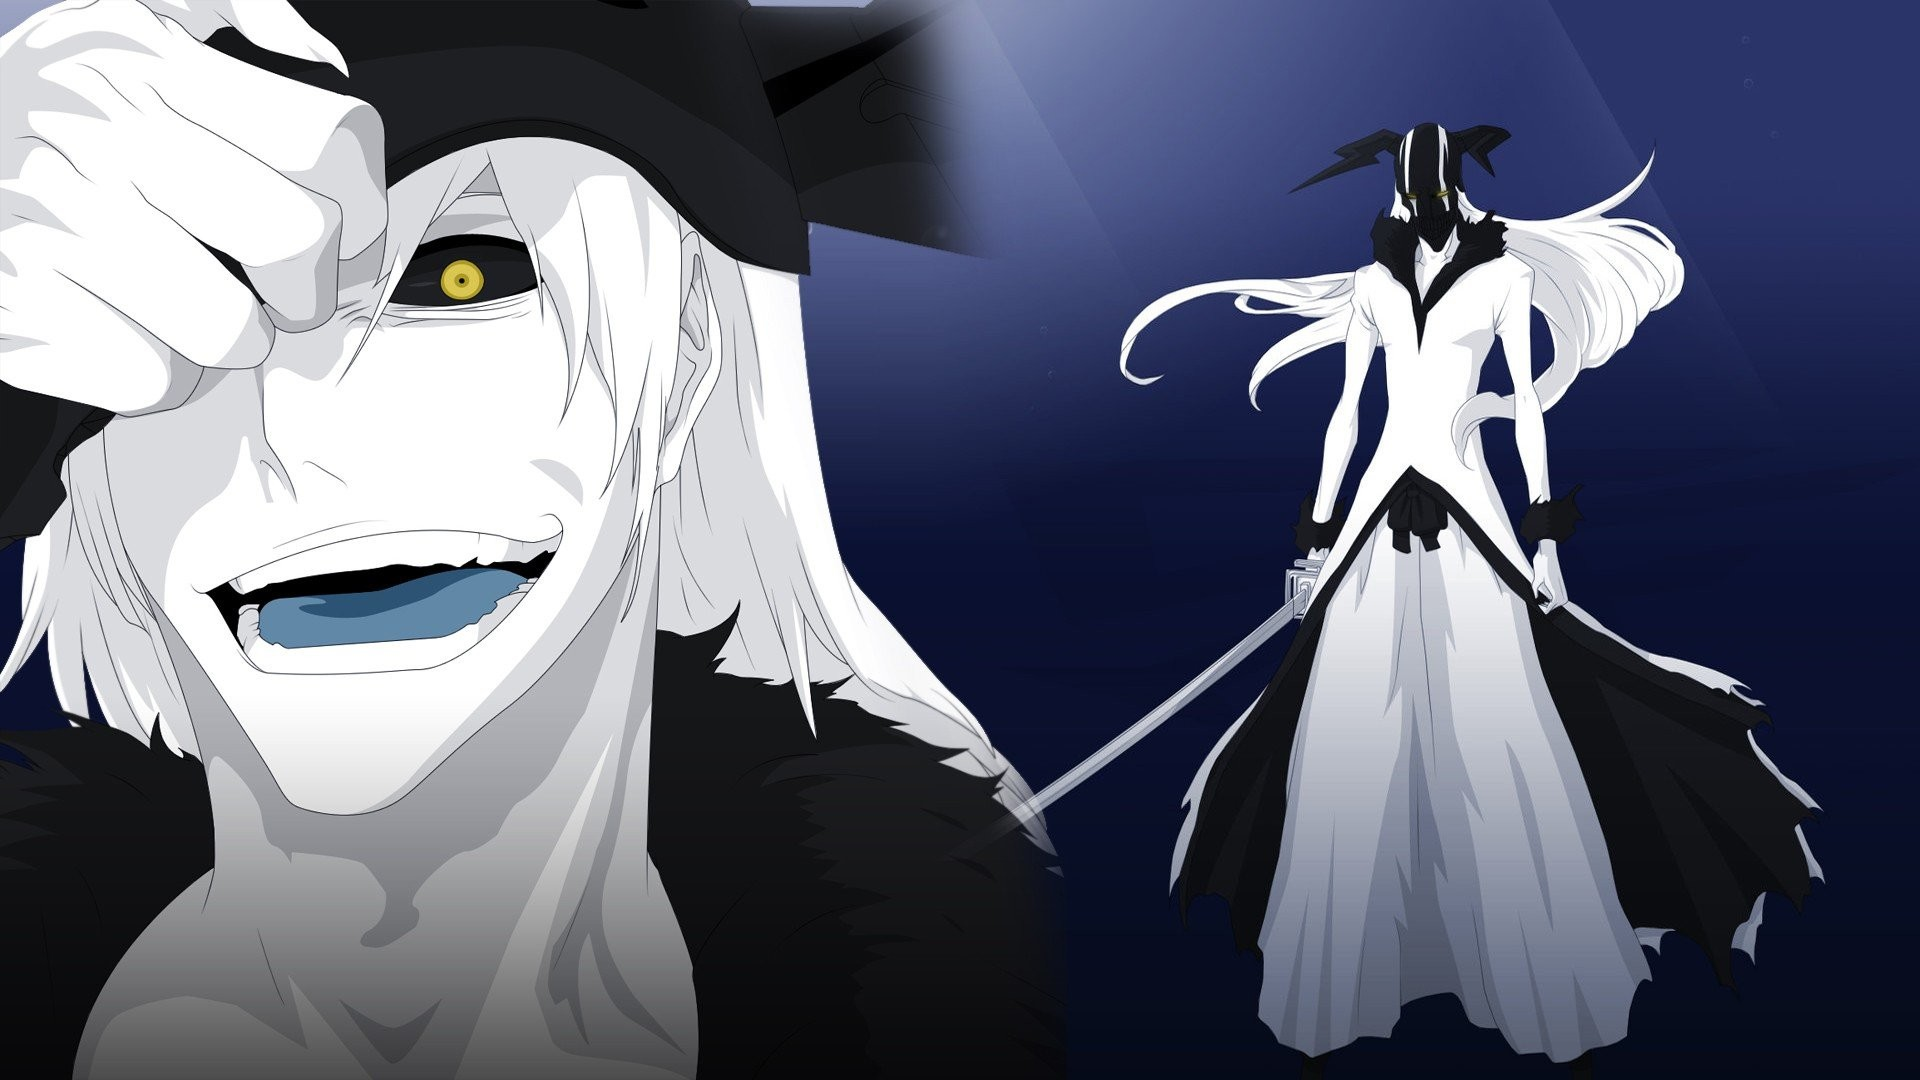 2560x1560 Bleach Discussion: Reasons Why Grimmjow is Ichigo's True Rival - YouTube · Download · 1920x1200 HD Wallpaper ...